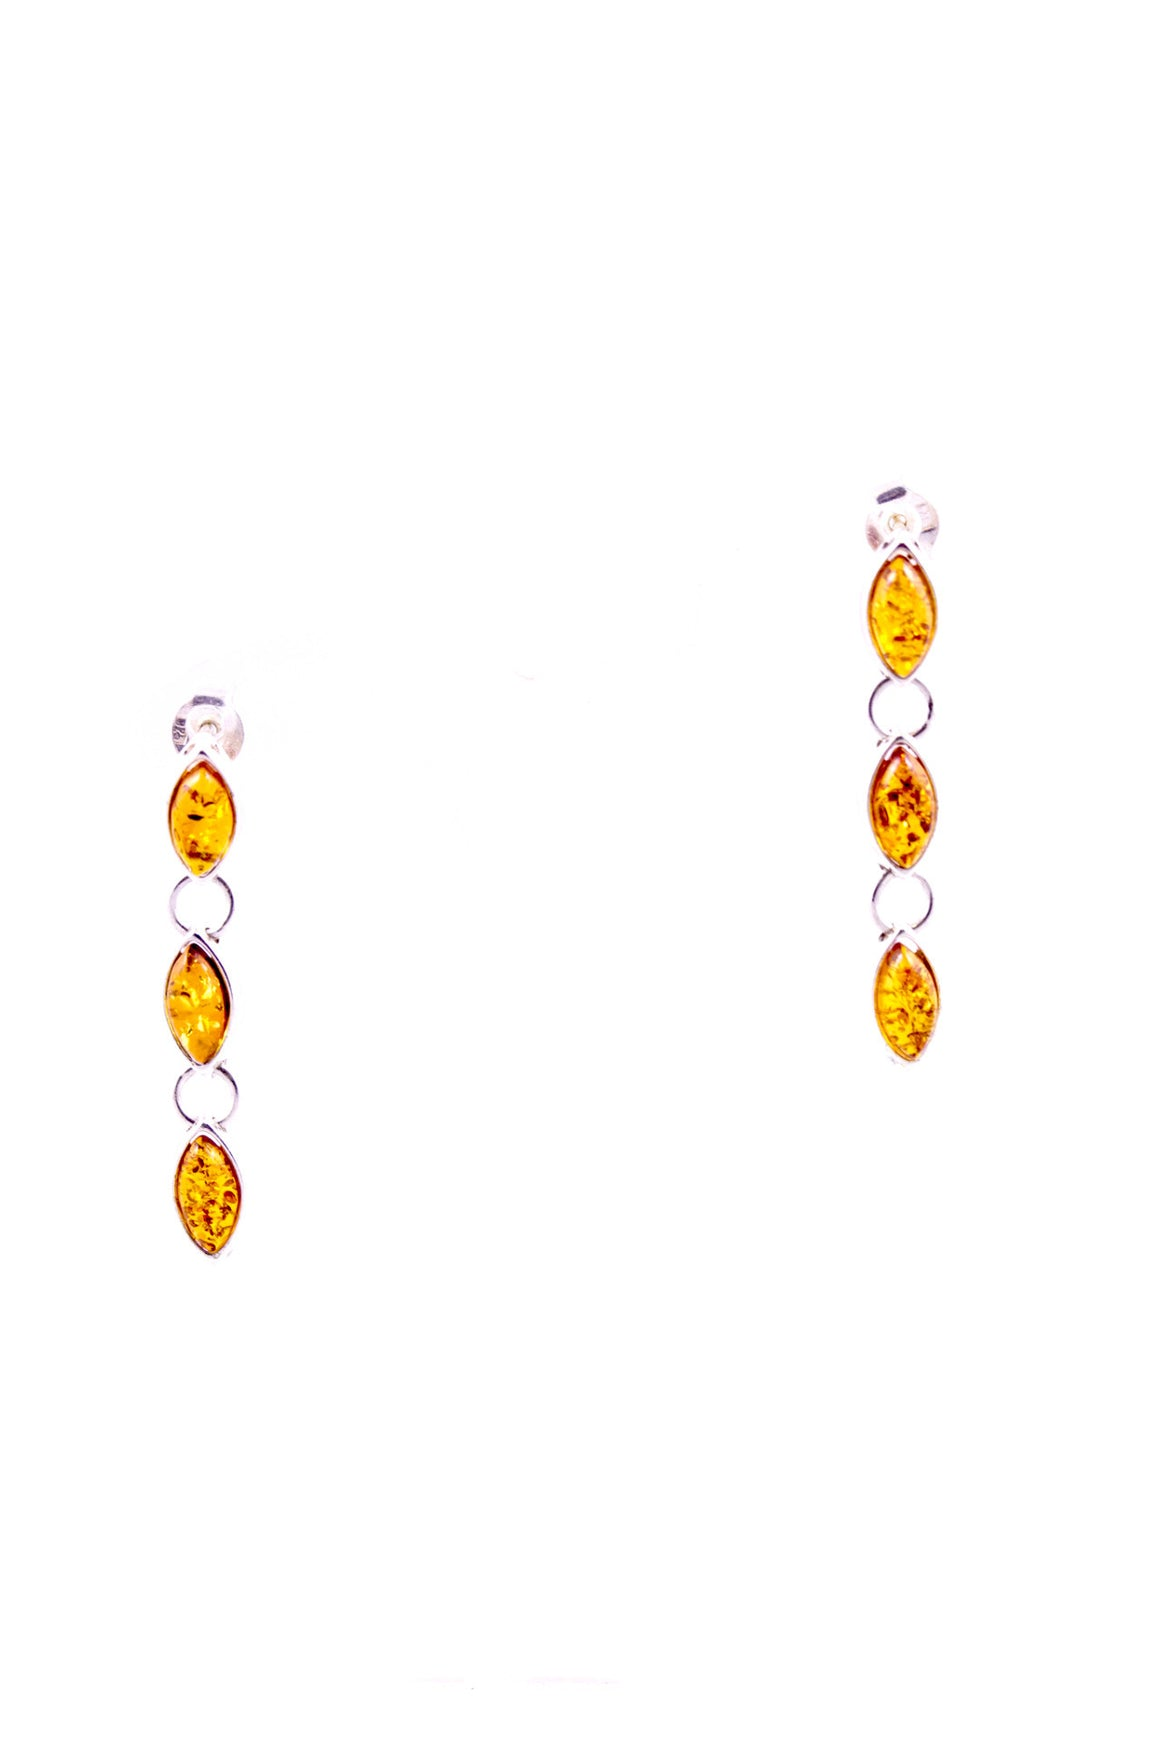 Cognac Baltic Amber and Sterling Silver Dangly Earrings landscape view